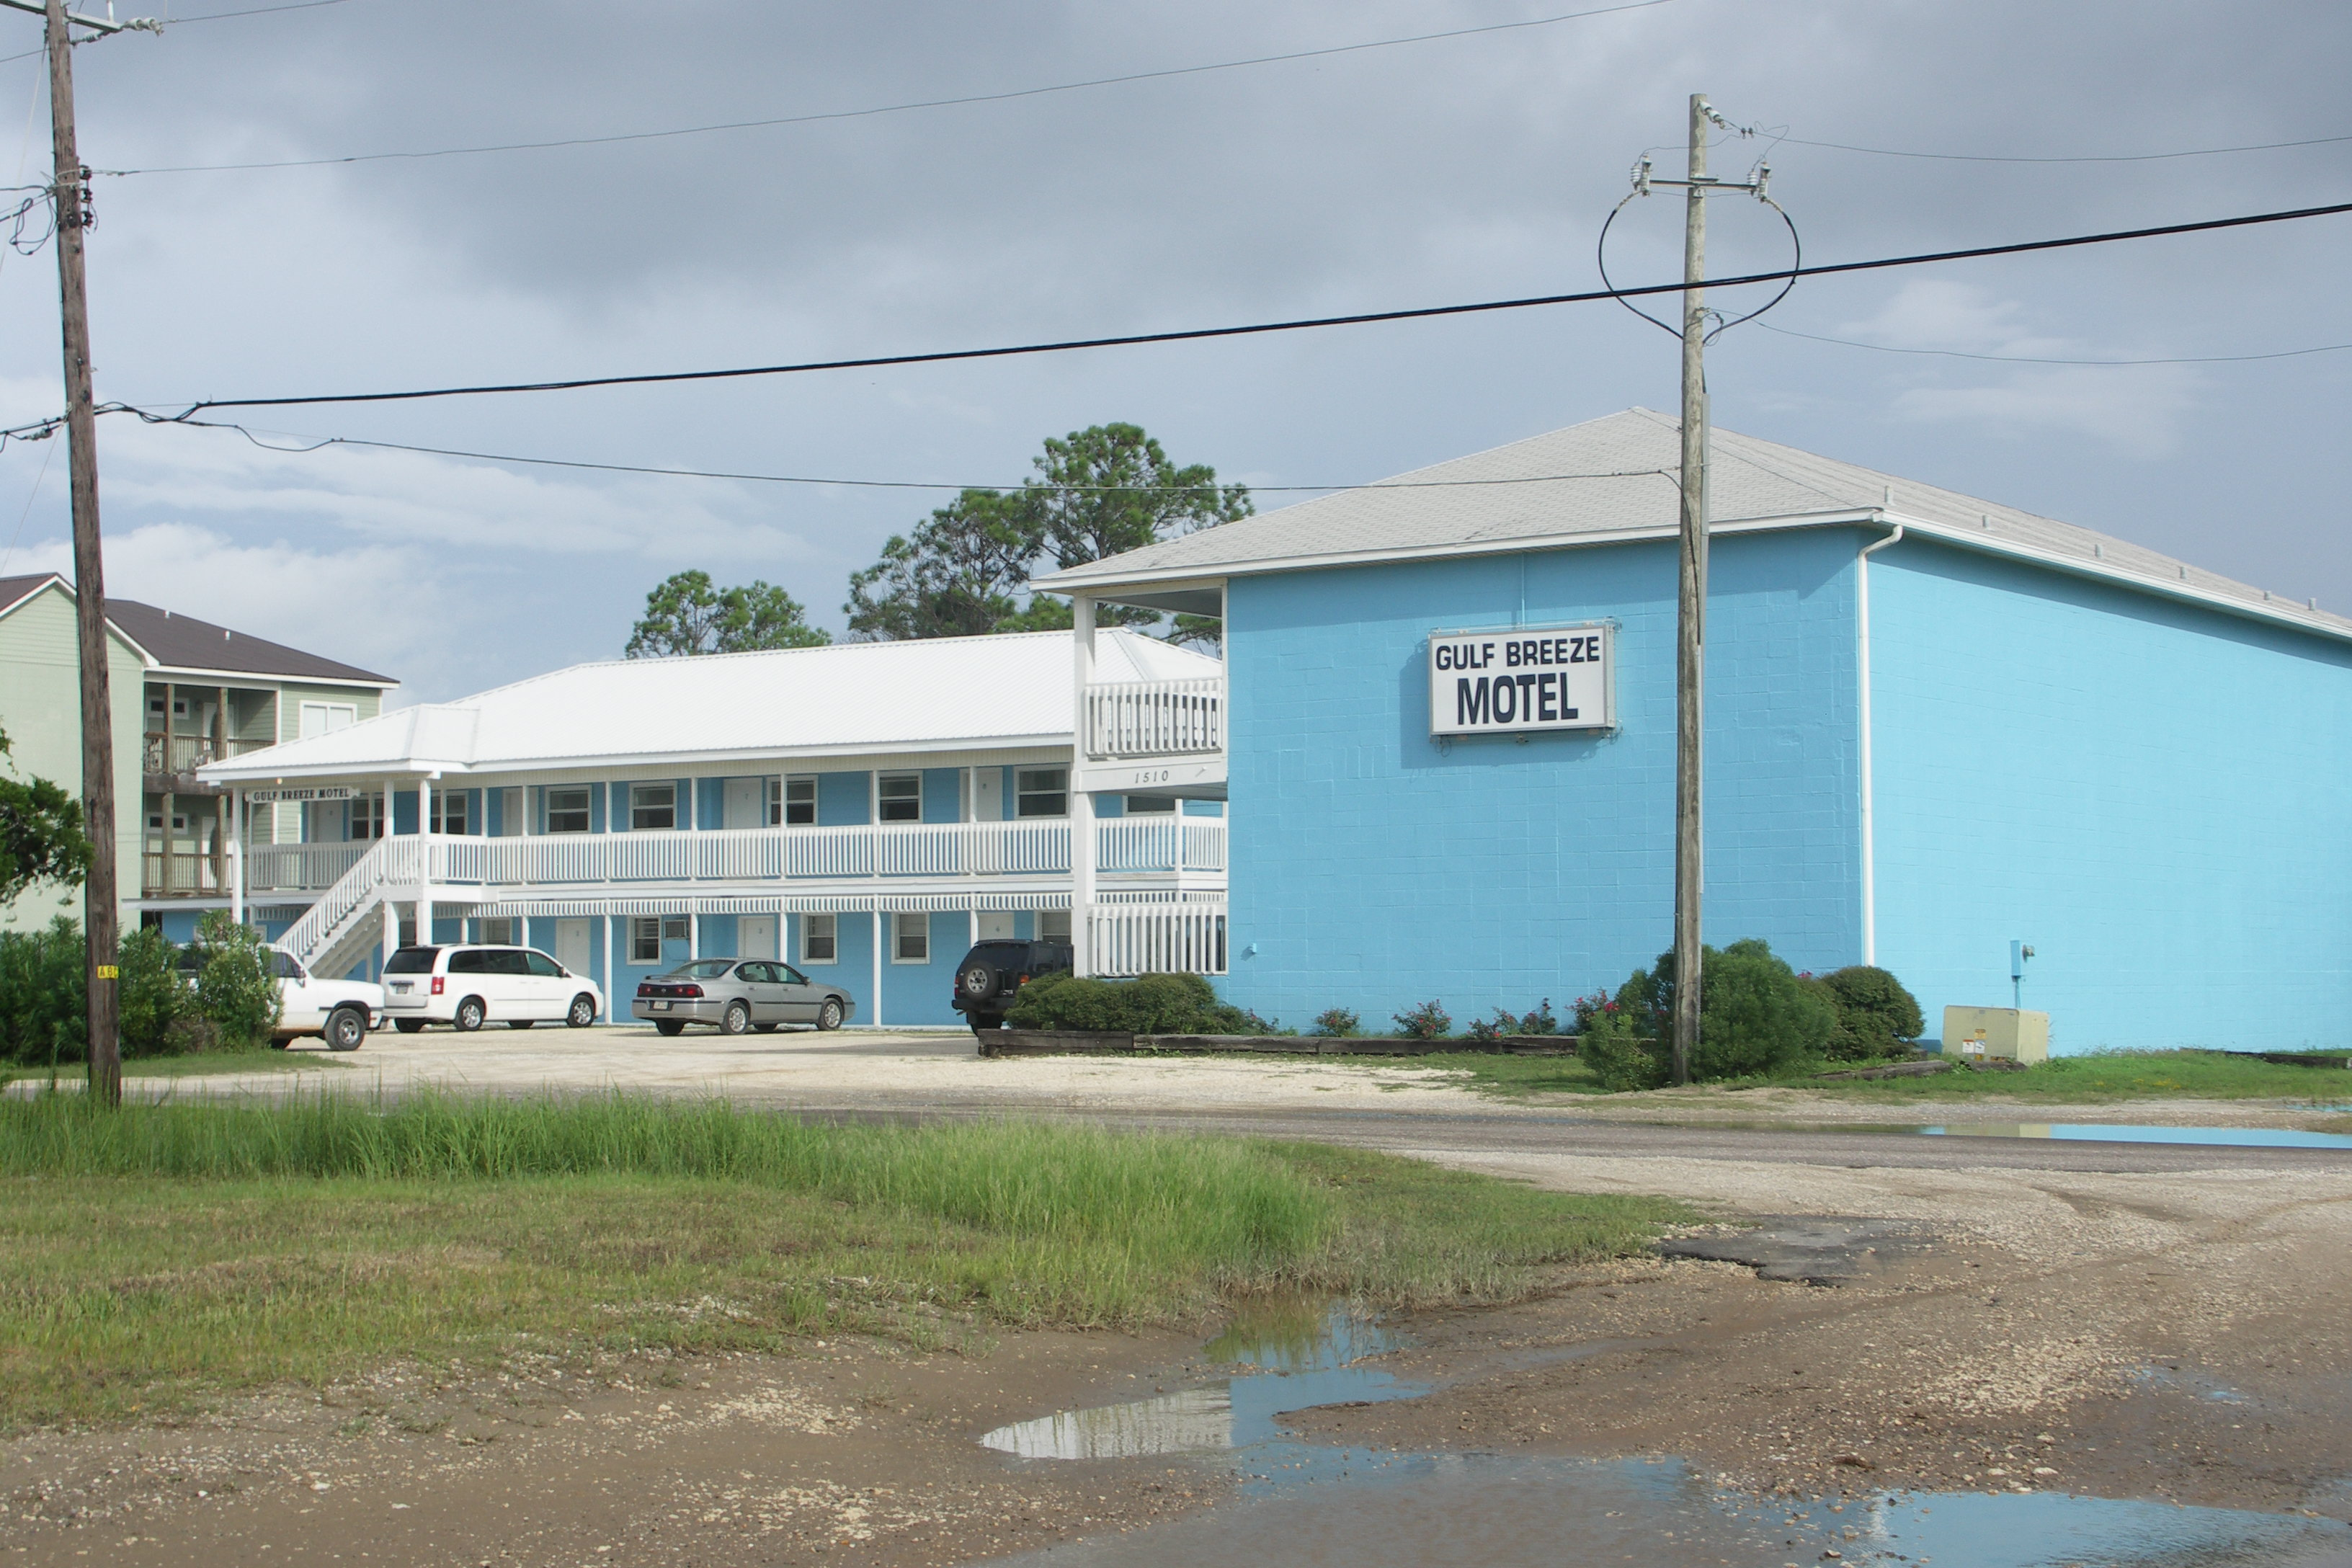 Gulf Breeze Motel